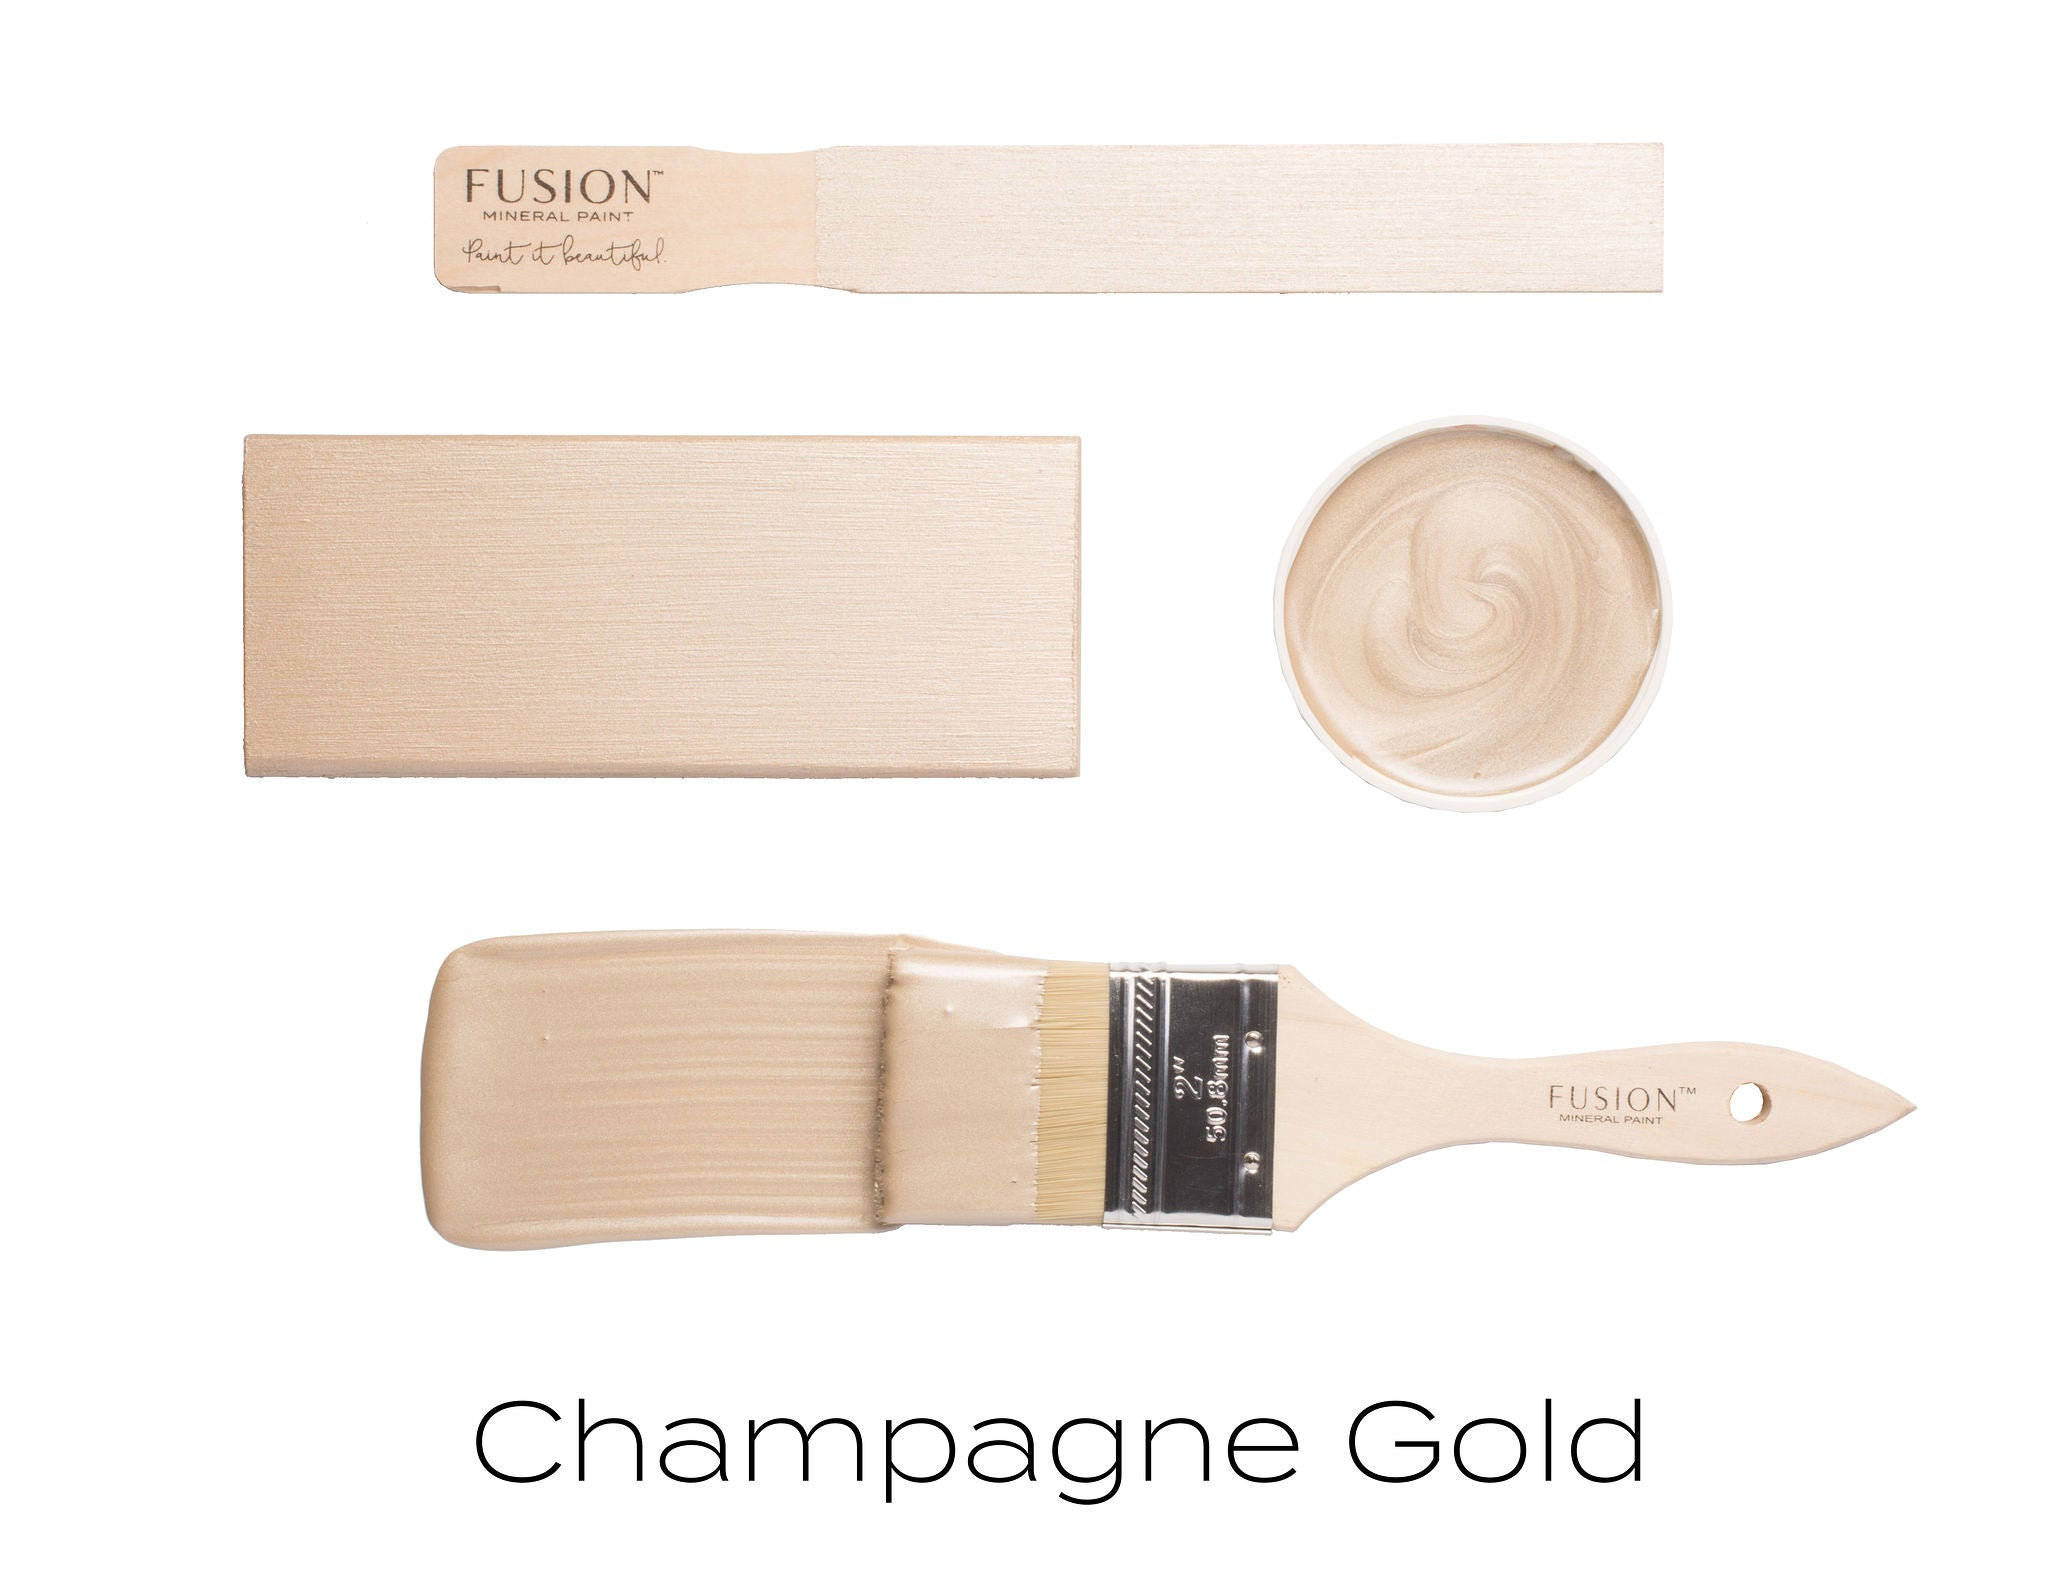 Champagne Gold Metallic Paint *New* - Fusion Mineral Paint - Where to Buy Online - Dear Olympia - Flate Rate US Shipping